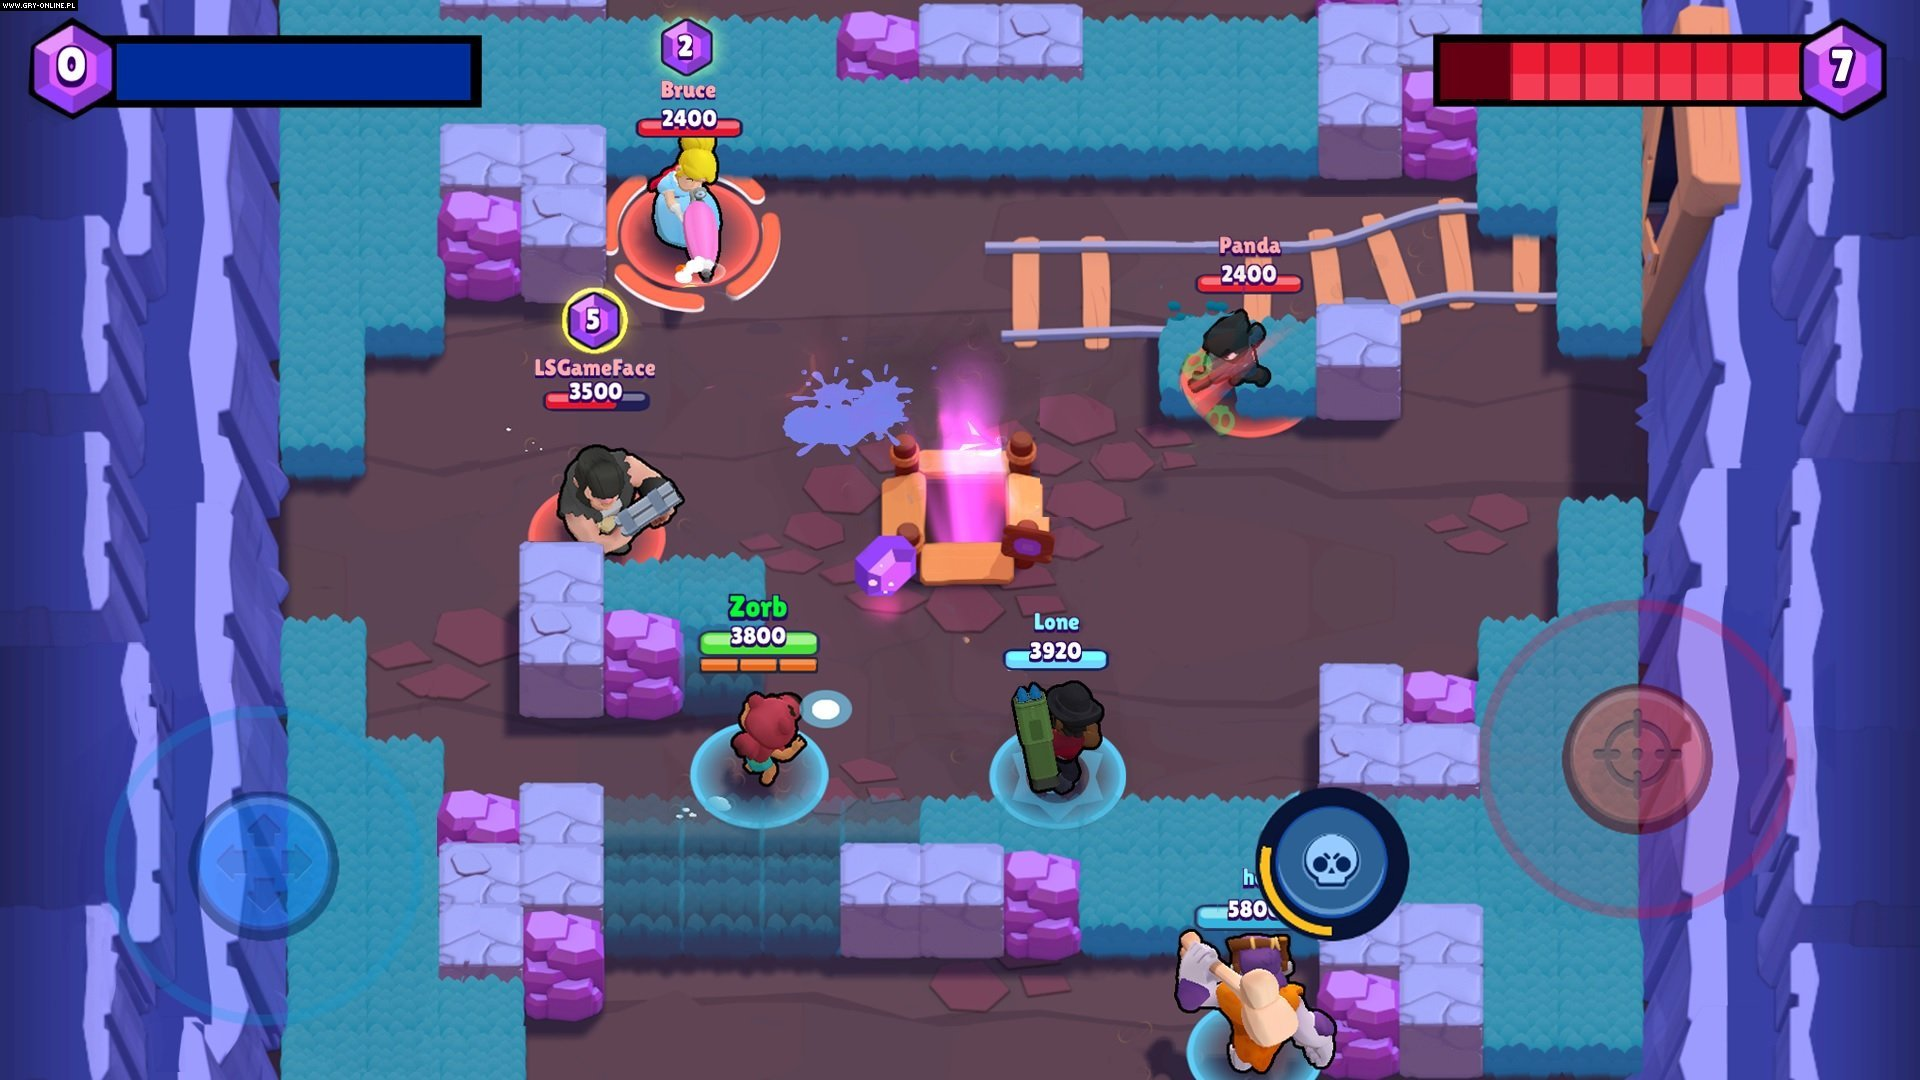 Brawl Stars iOS, AND Games Image 1/5, Supercell